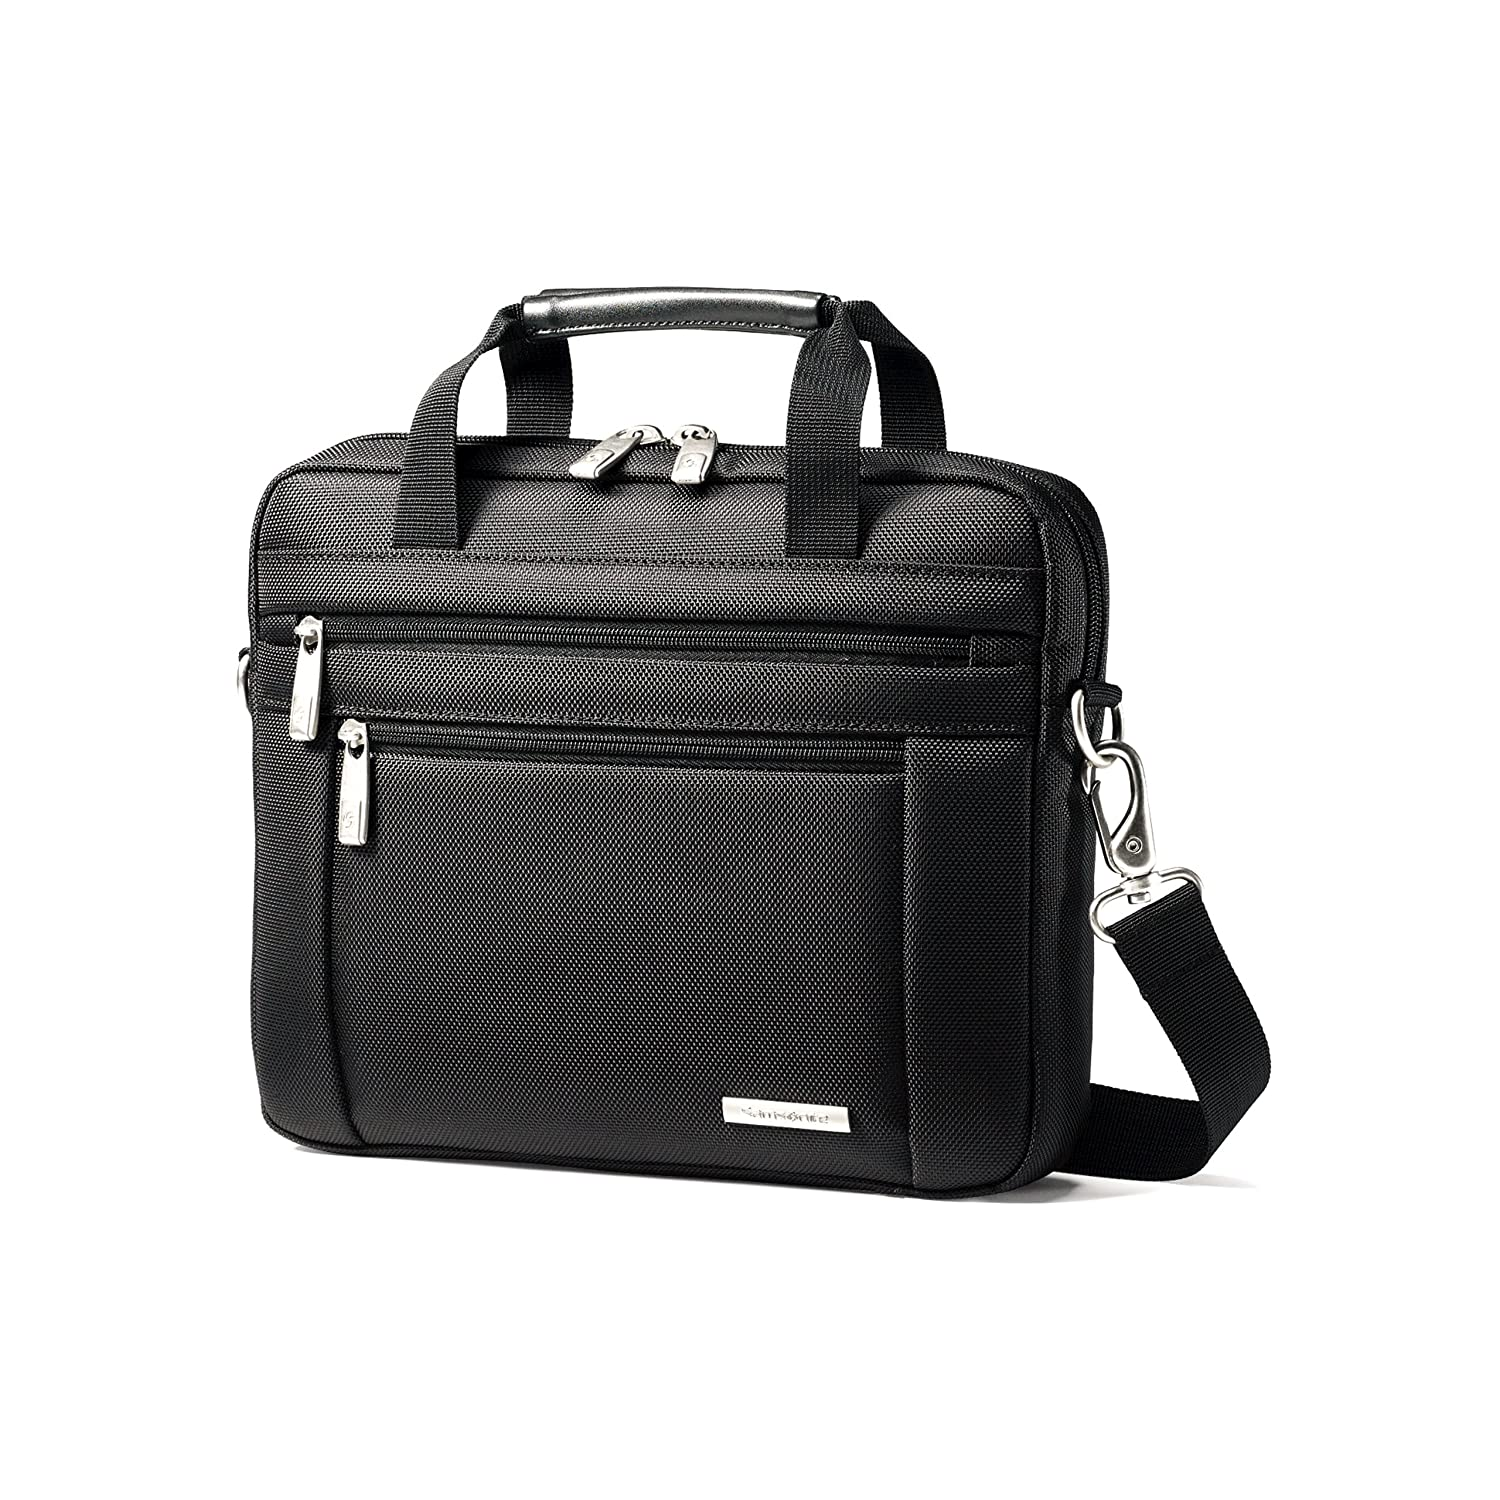 Samsonite Classic Business Tablet/iPad Shuttle